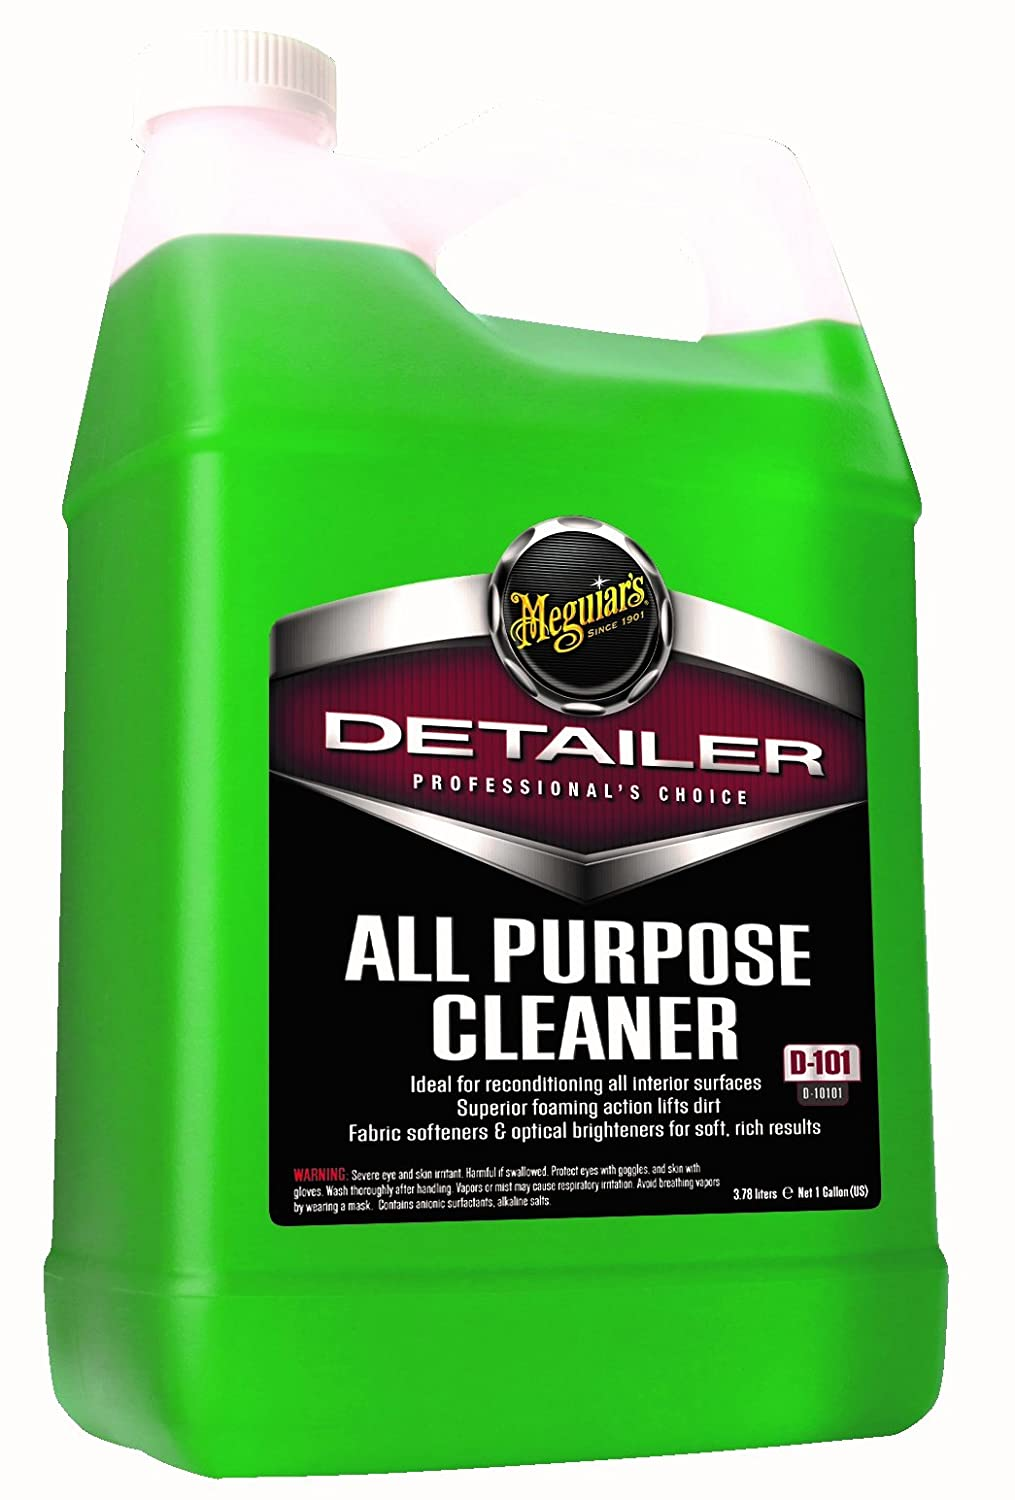 meguiars all purpose cleaner 3 78 litres amazon co uk car meguiars all purpose cleaner 3 78 litres amazon co uk car motorbike